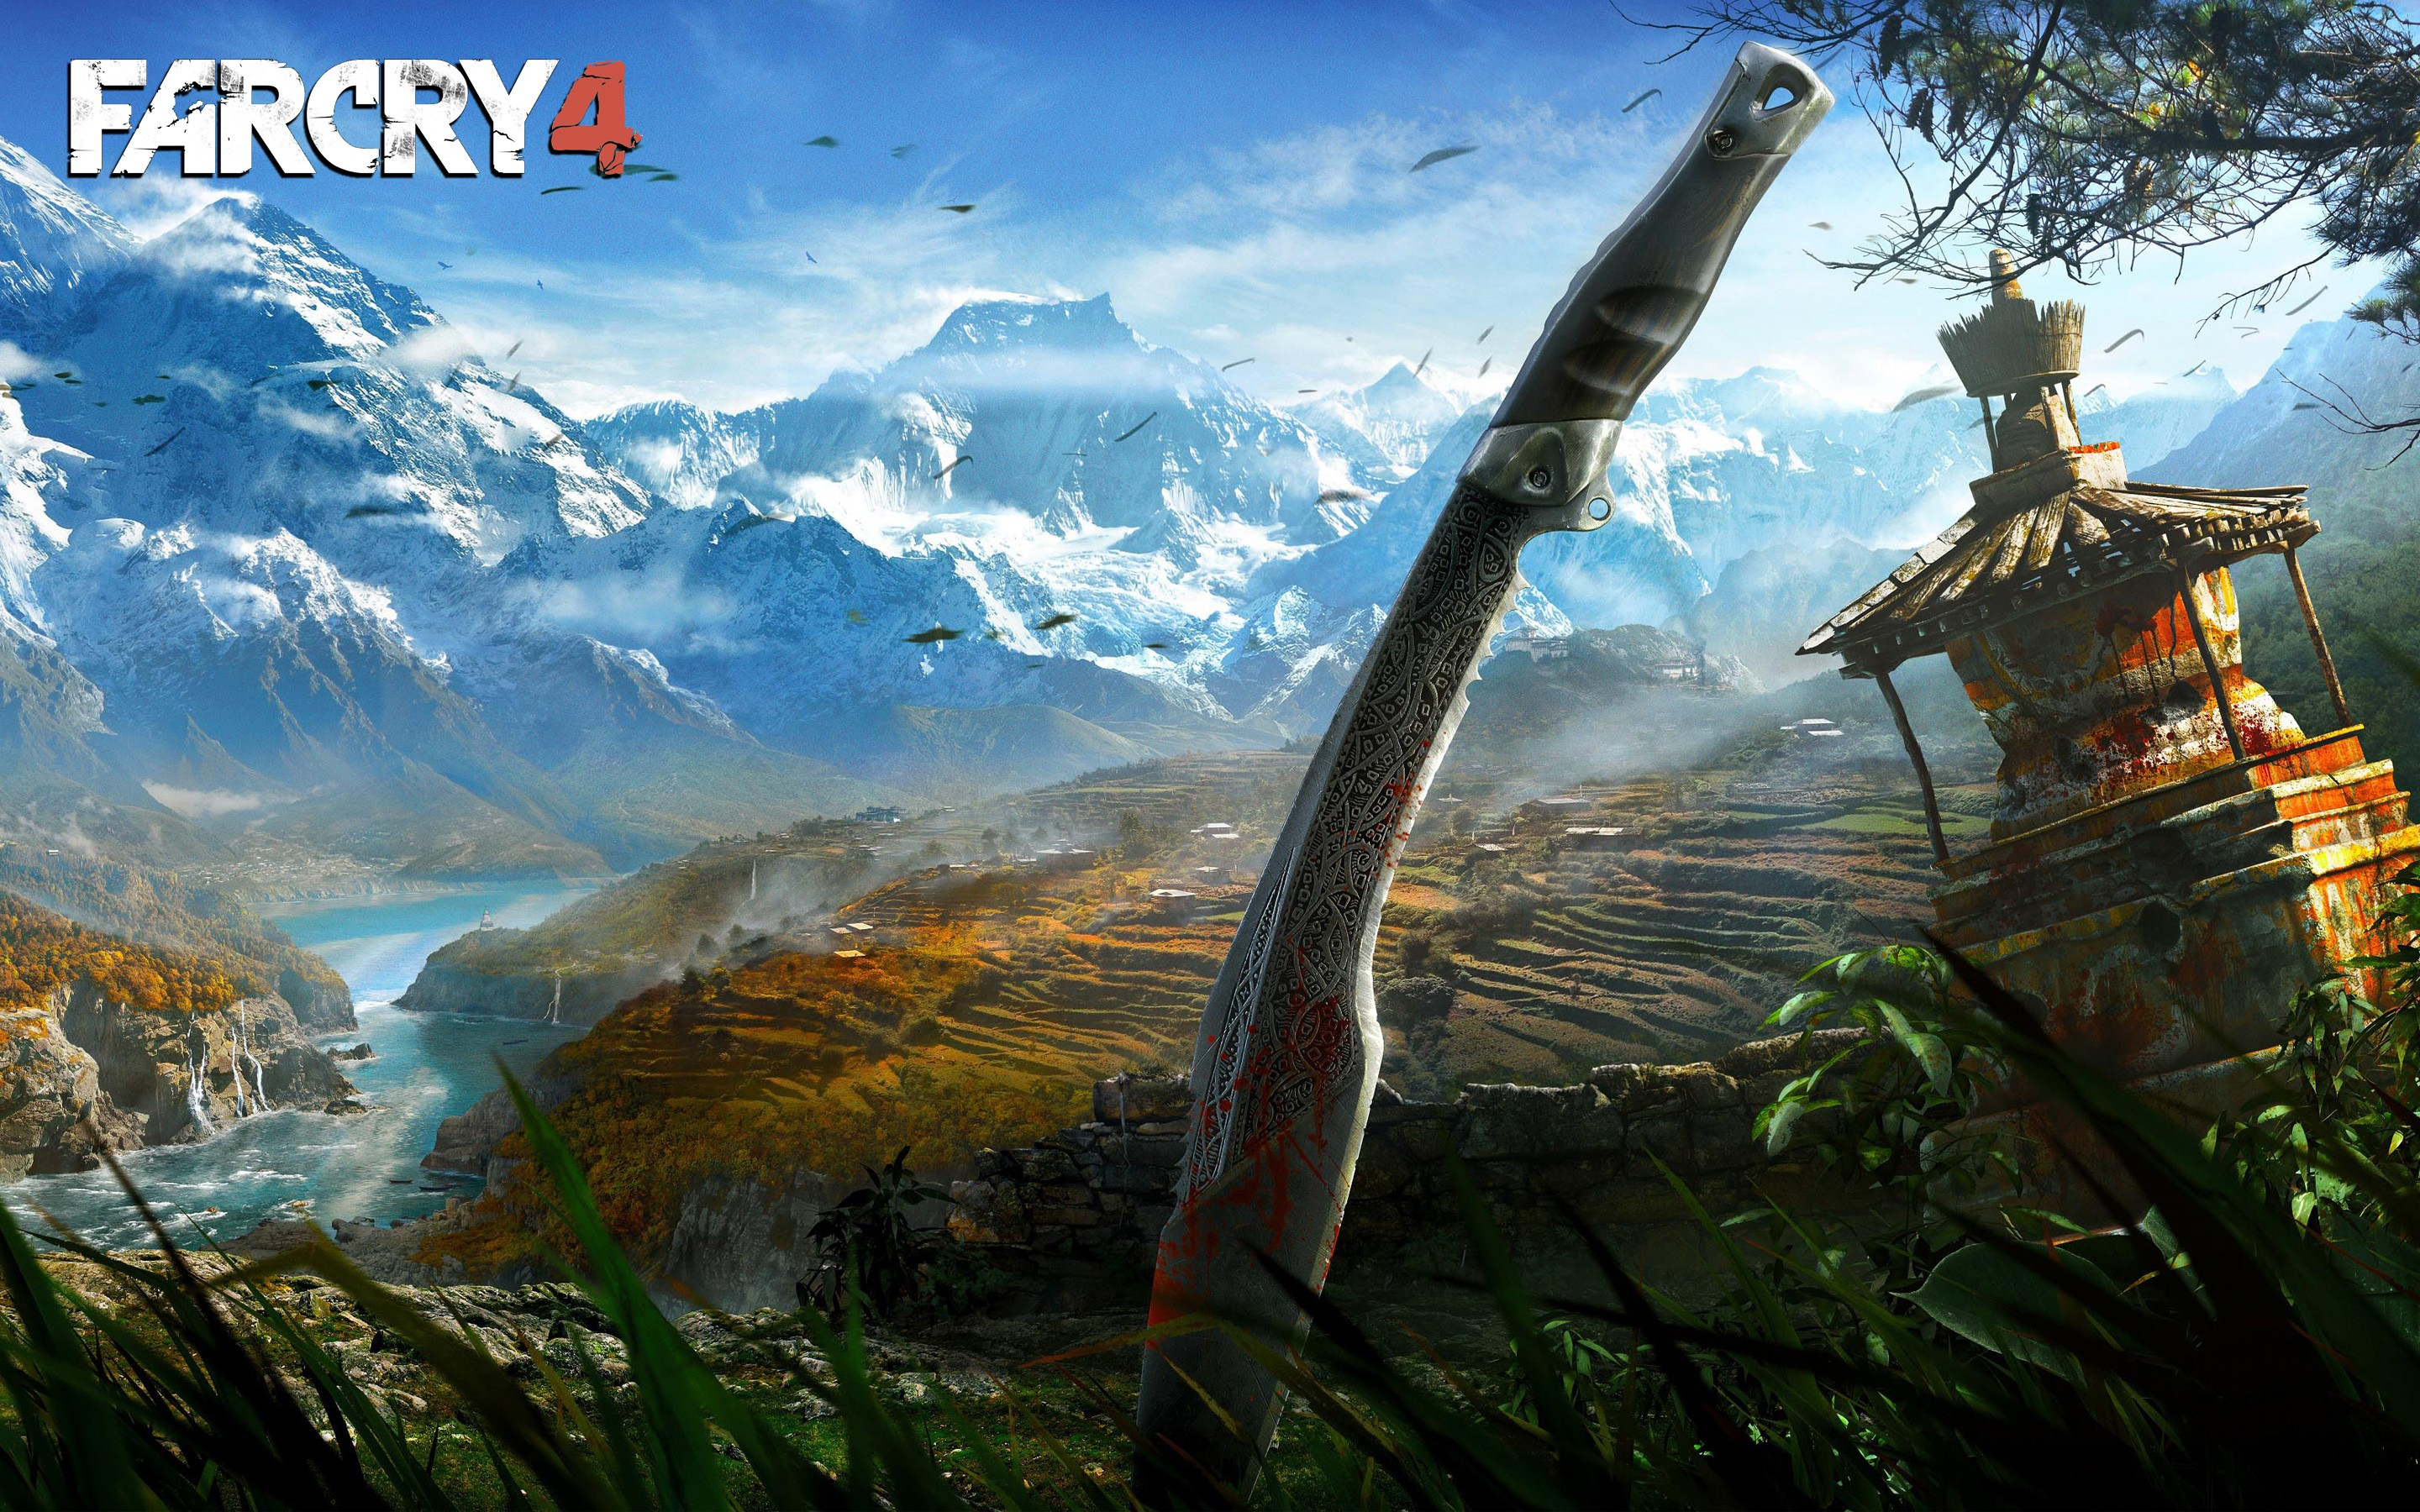 Top 10 3d Wallpapers For Android Far Cry 4 Himalayas Wallpapers Hd Wallpapers Id 13572